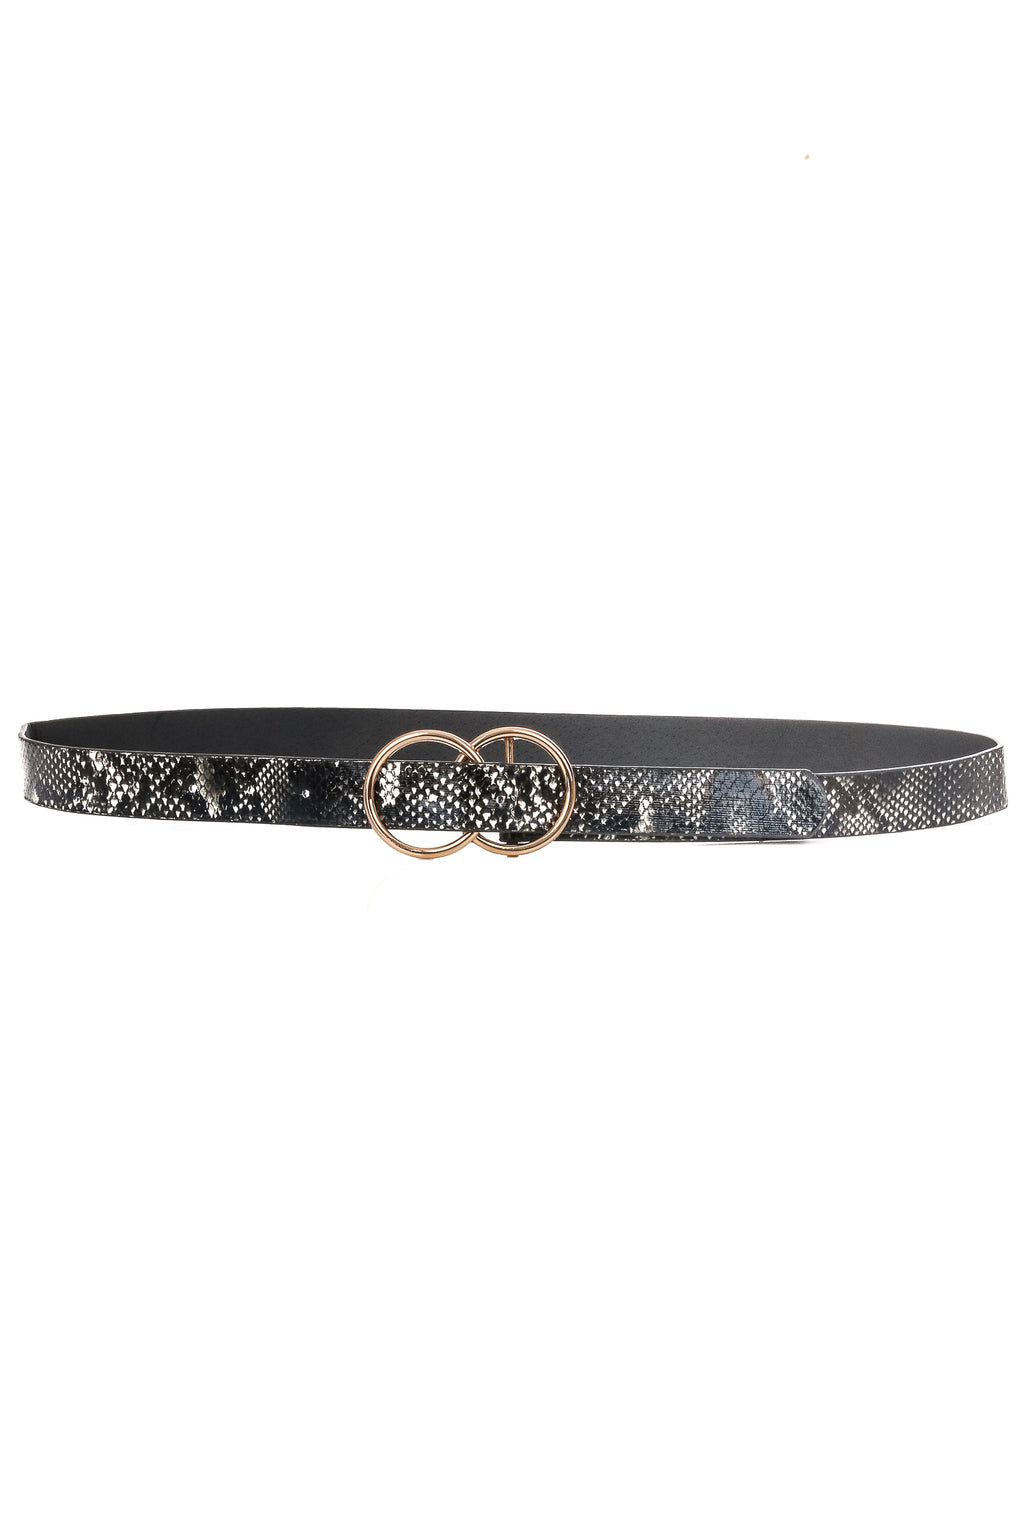 Faux Animal Print Double Buckle Belt - besties STUDIOS